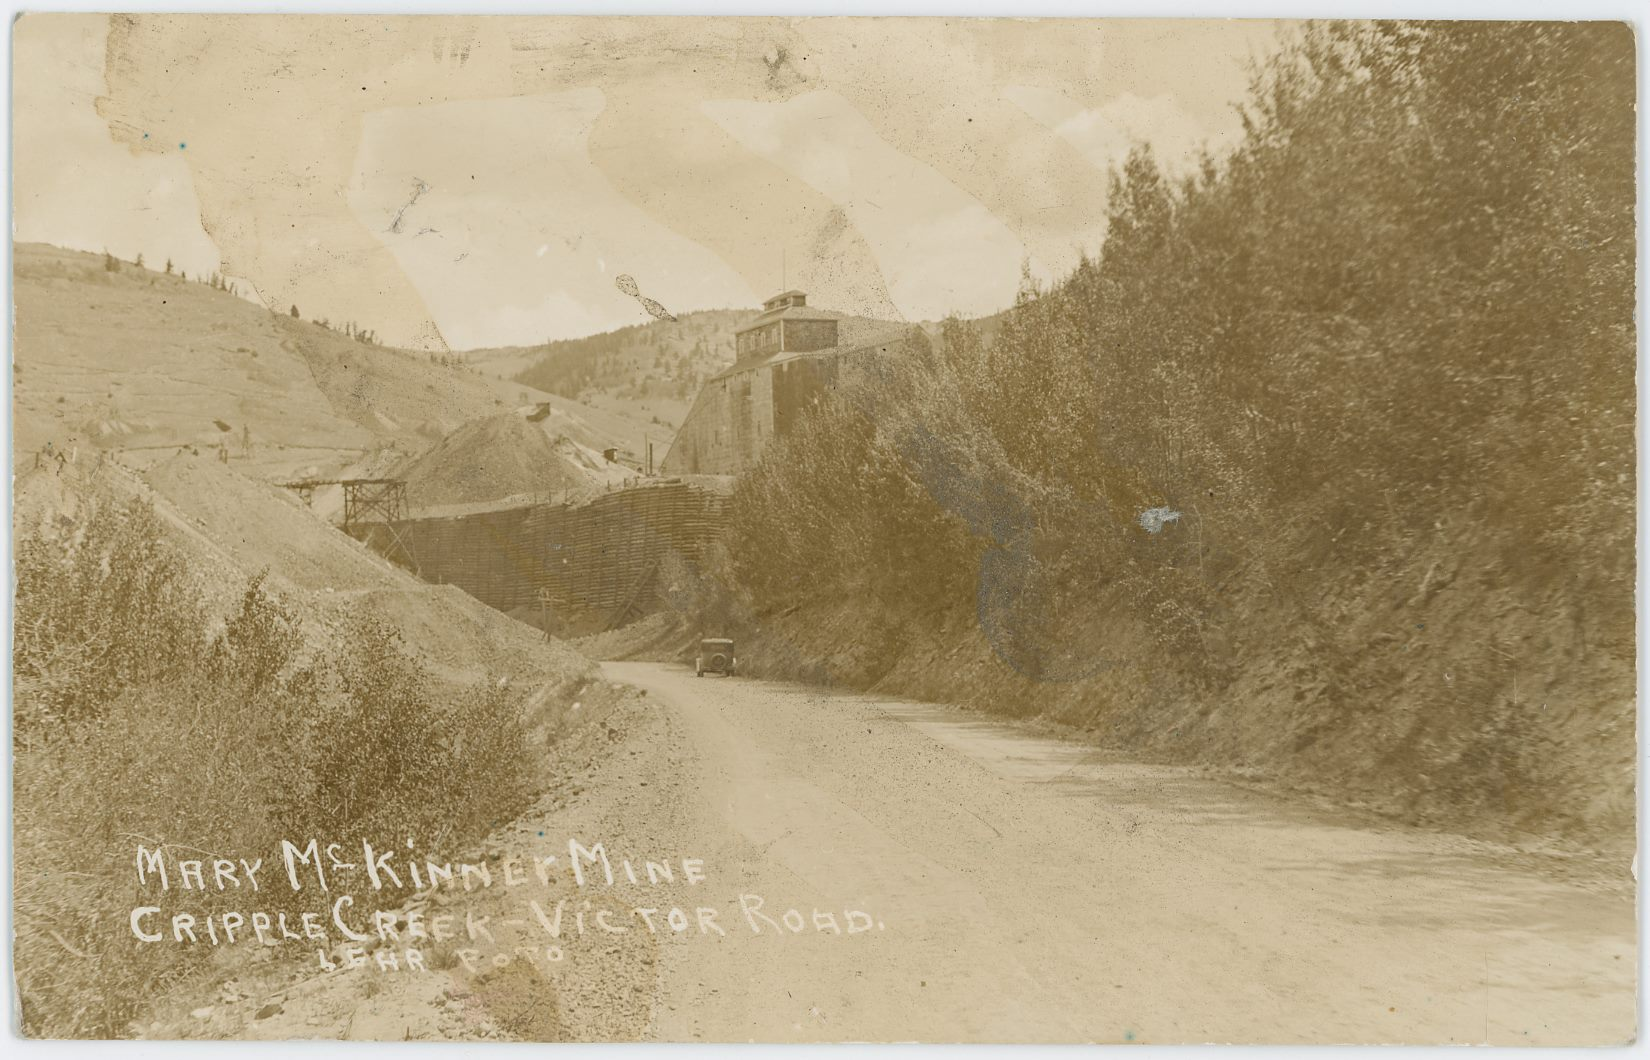 This view is from along the Victor-Cripple Creek road, running on the former roadbed of the Florence & Cripple Creek, looking towards the Mary McKinney Mine about center sideways and its huge crib-wall. If one could have walked into the view and hitched a ride with the automobile seen one would have ended up in Cripple Creek.    The Hill in distance left-hand side is part of Gold Hill, and I wonder if part of the old Short Line roadbed is visible up there near the skyline. I can't sadly see anything though in a high-resolution scan of 1200dpi, as there is just too much blur, and overall the whole card is sadly not in a good shape due to someone at some time in the past having spilled something over it.